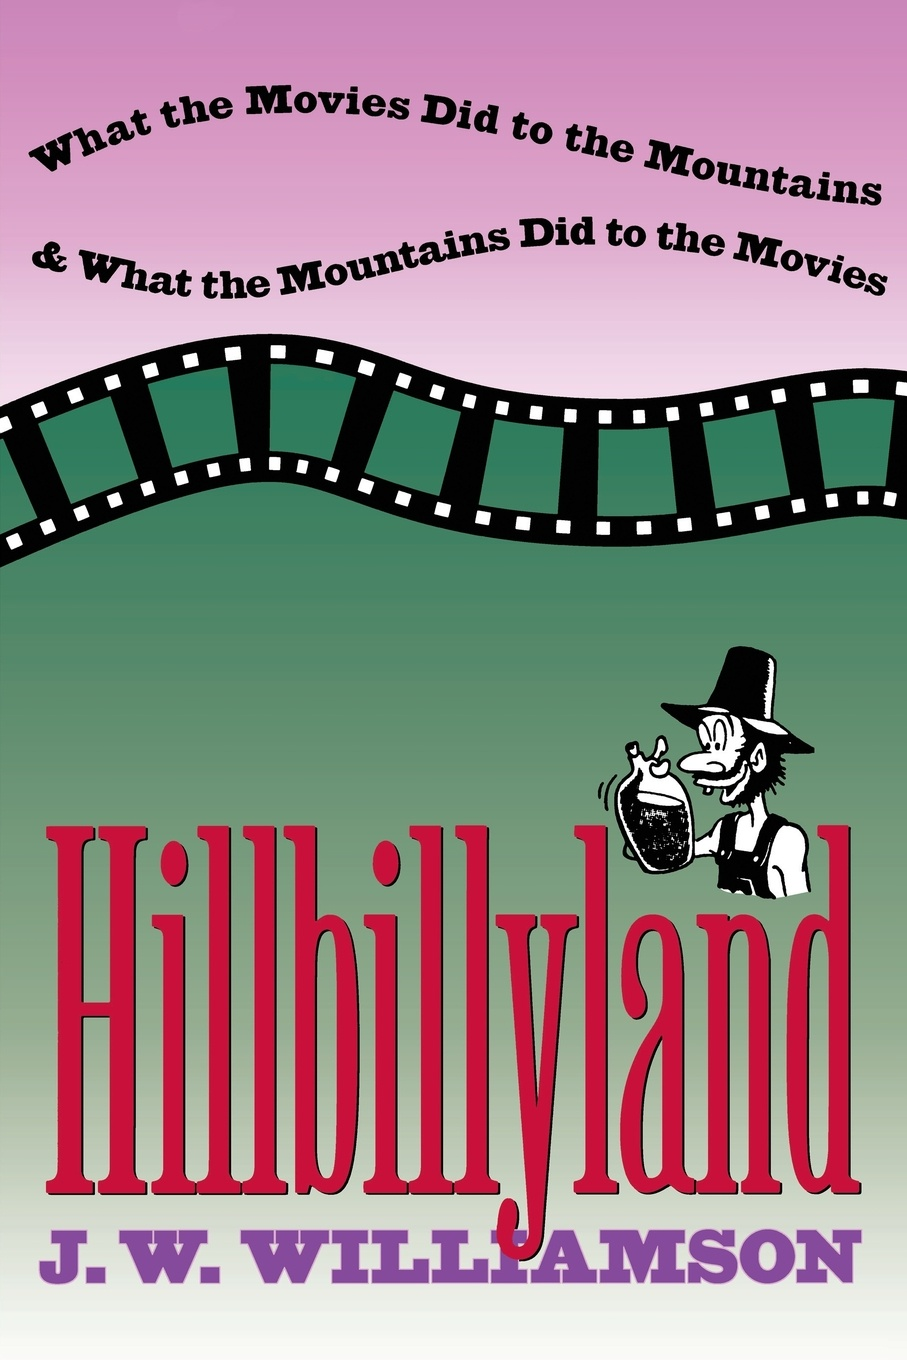 J. W. Williamson Hillbillyland. What the Movies Did to the Mountains and What the Mountains Did to the Movies